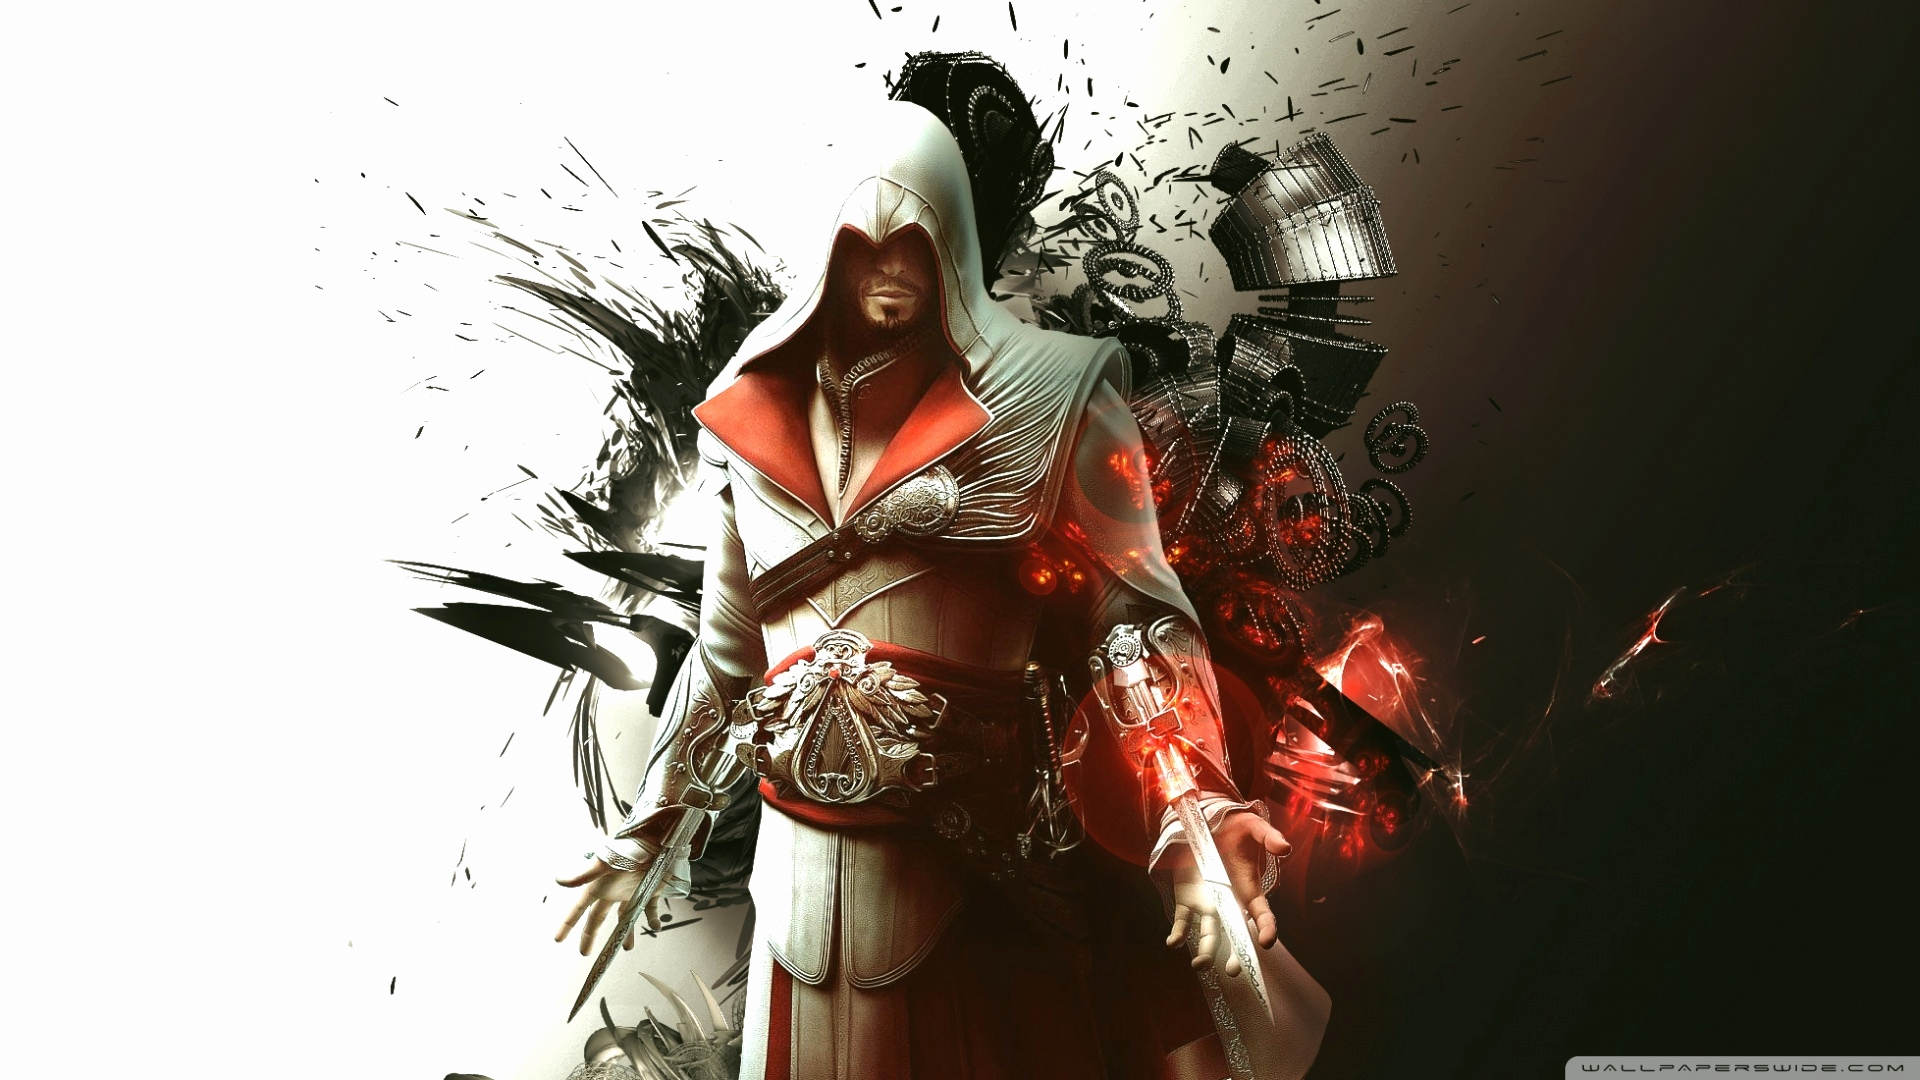 Awesome assassins creed 3 wallpapers hd wallpapers hd awesome assassins creed 3 wallpapers voltagebd Choice Image